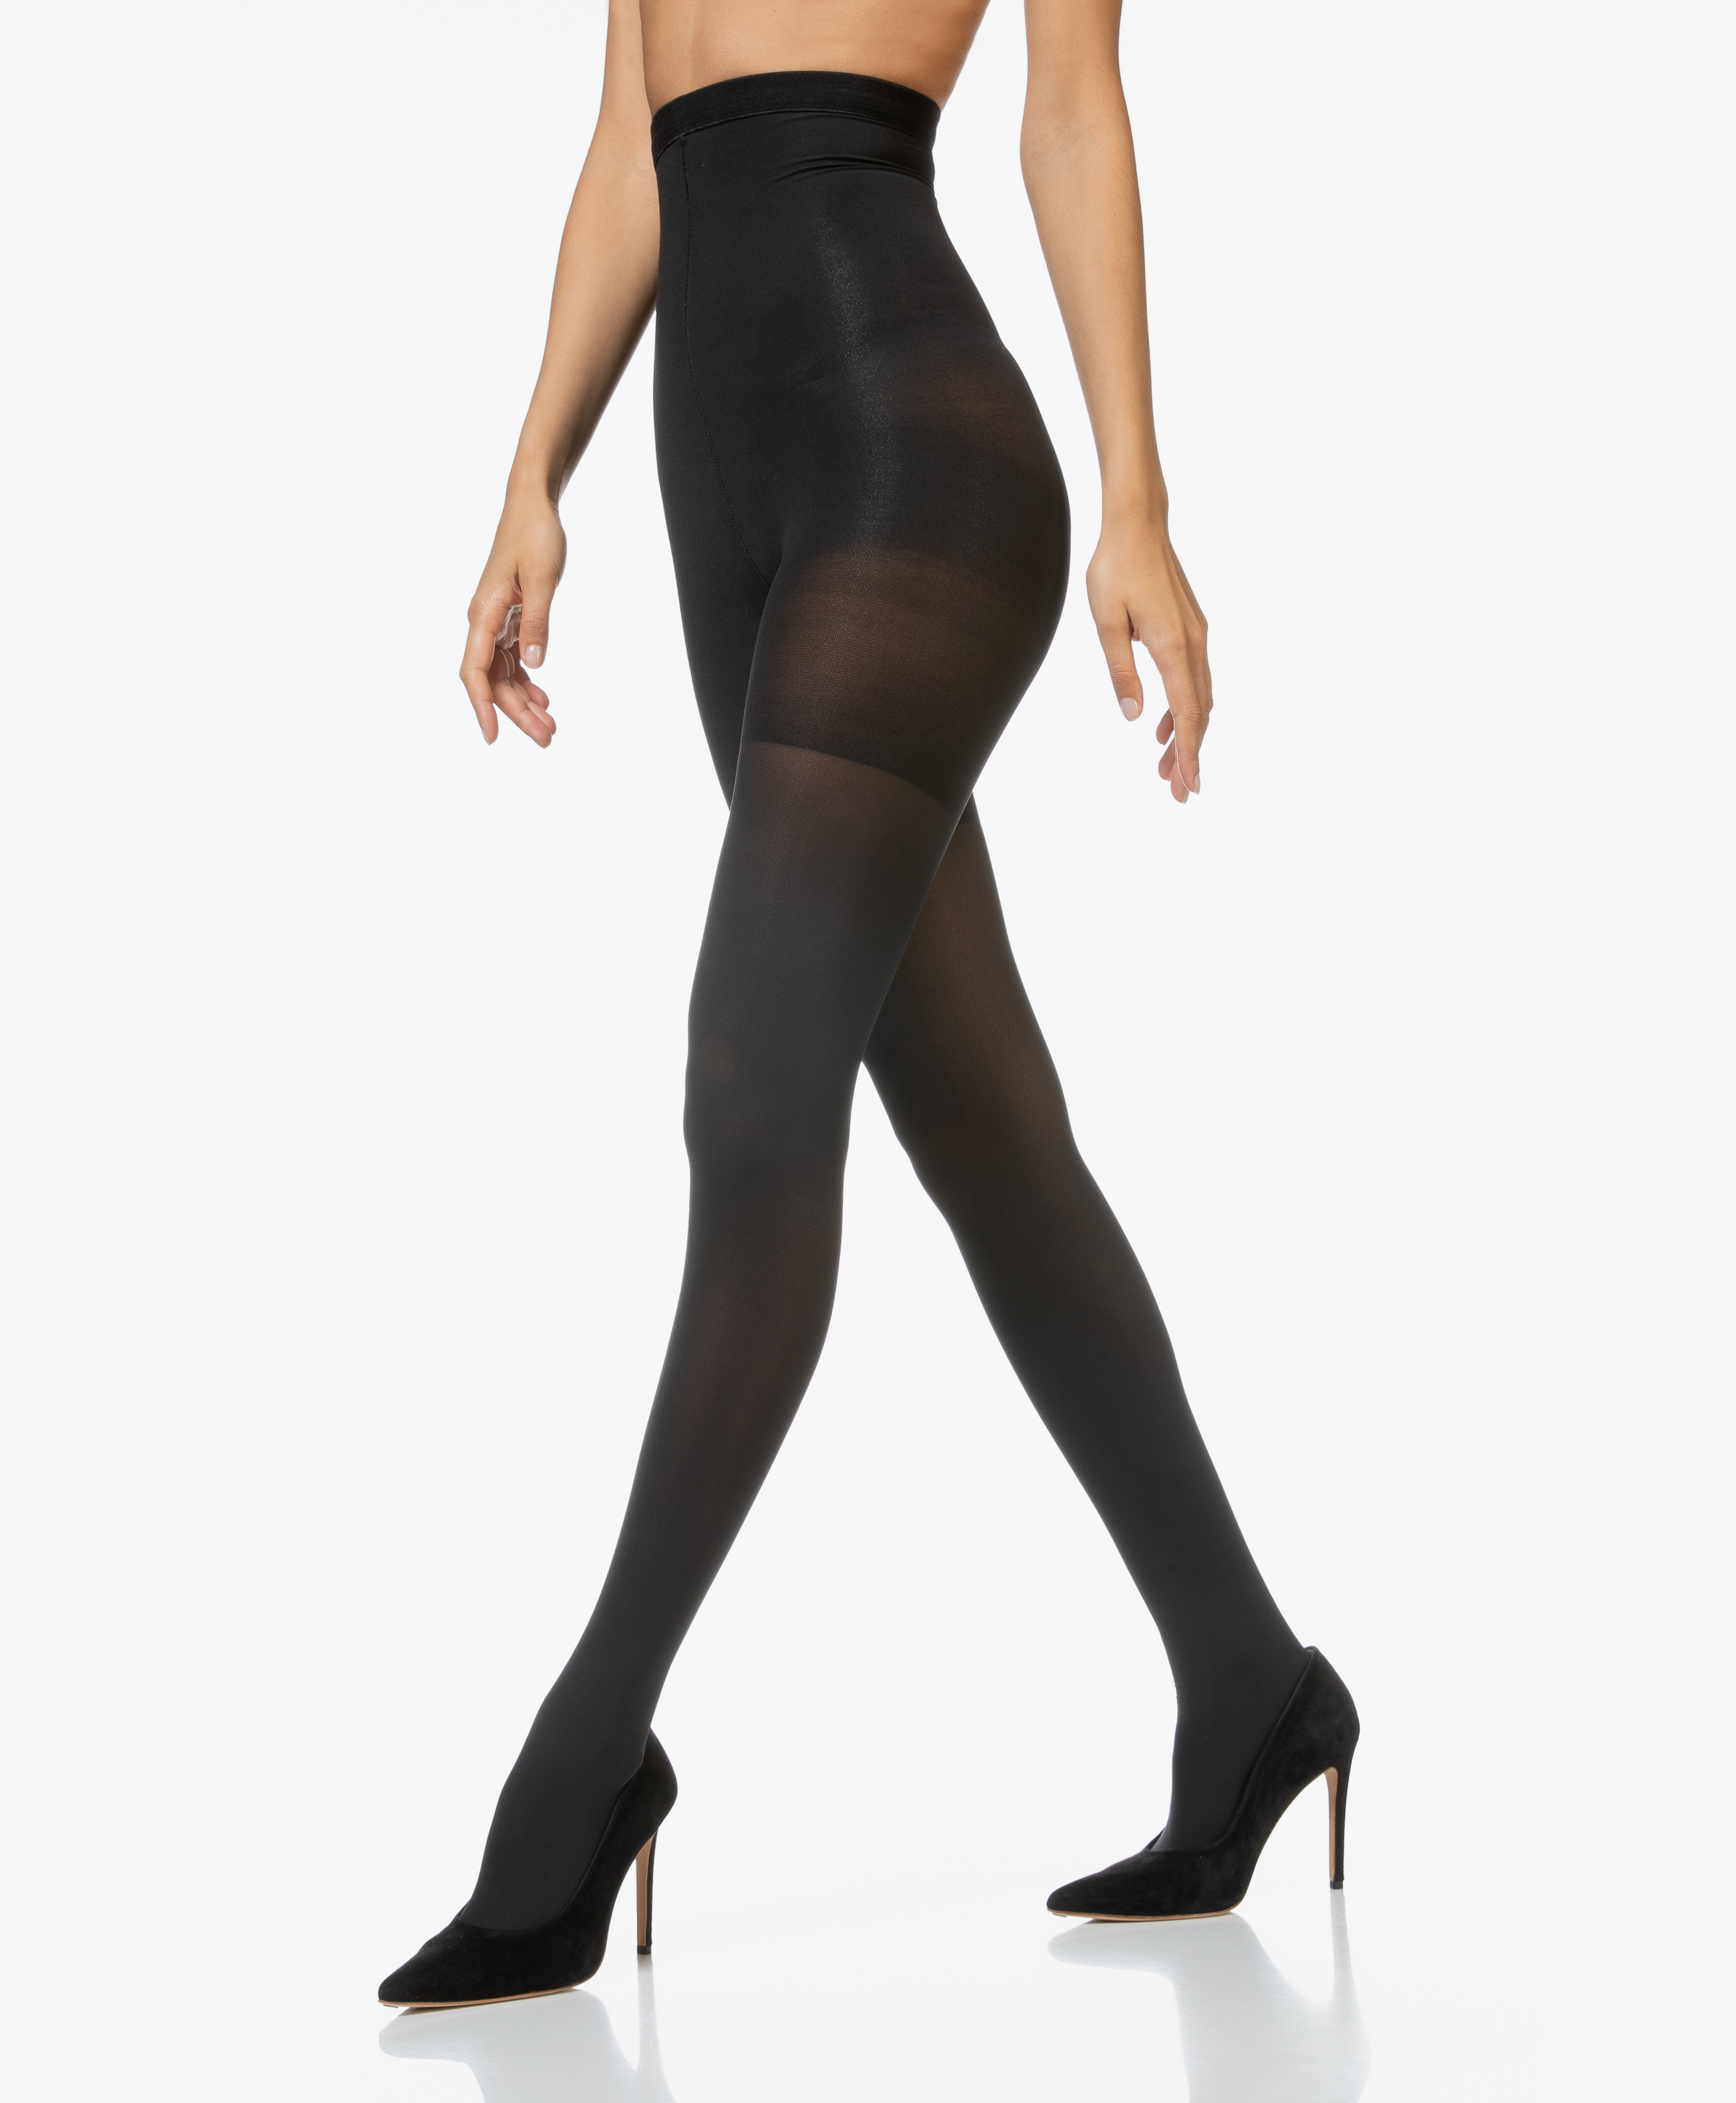 Spanx Womens 250424 High Waisted Luxe Leg Tights Solid Very Black Size C